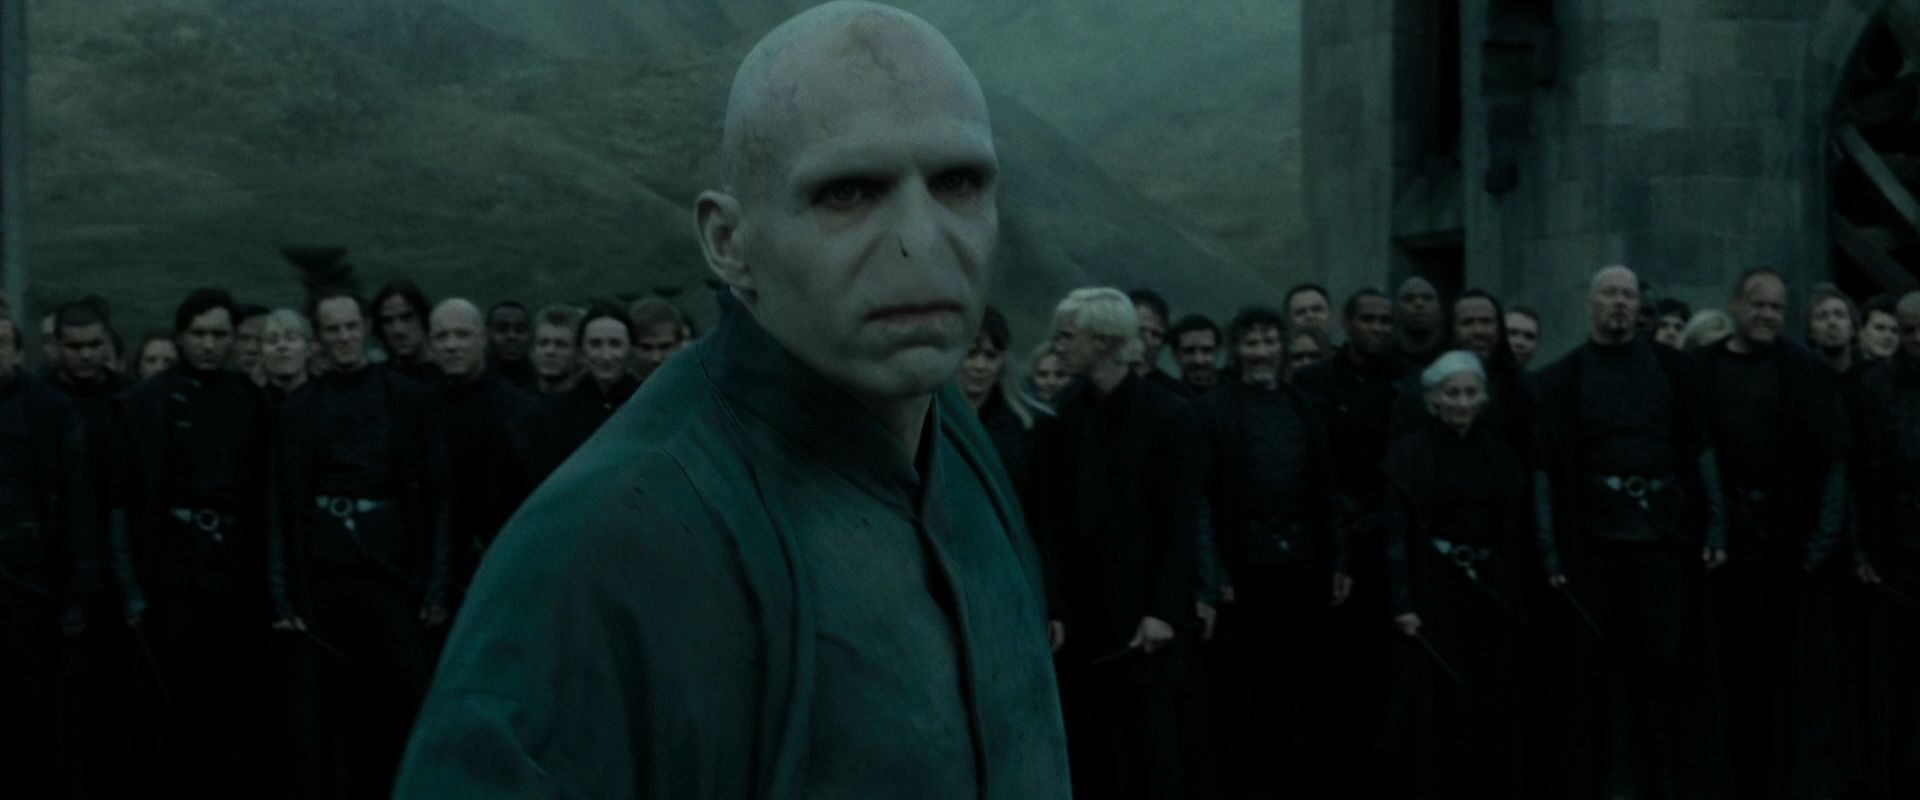 https://i1.wp.com/images5.fanpop.com/image/photos/26600000/HP-DH-part-2-lord-voldemort-26625086-1920-800.jpg